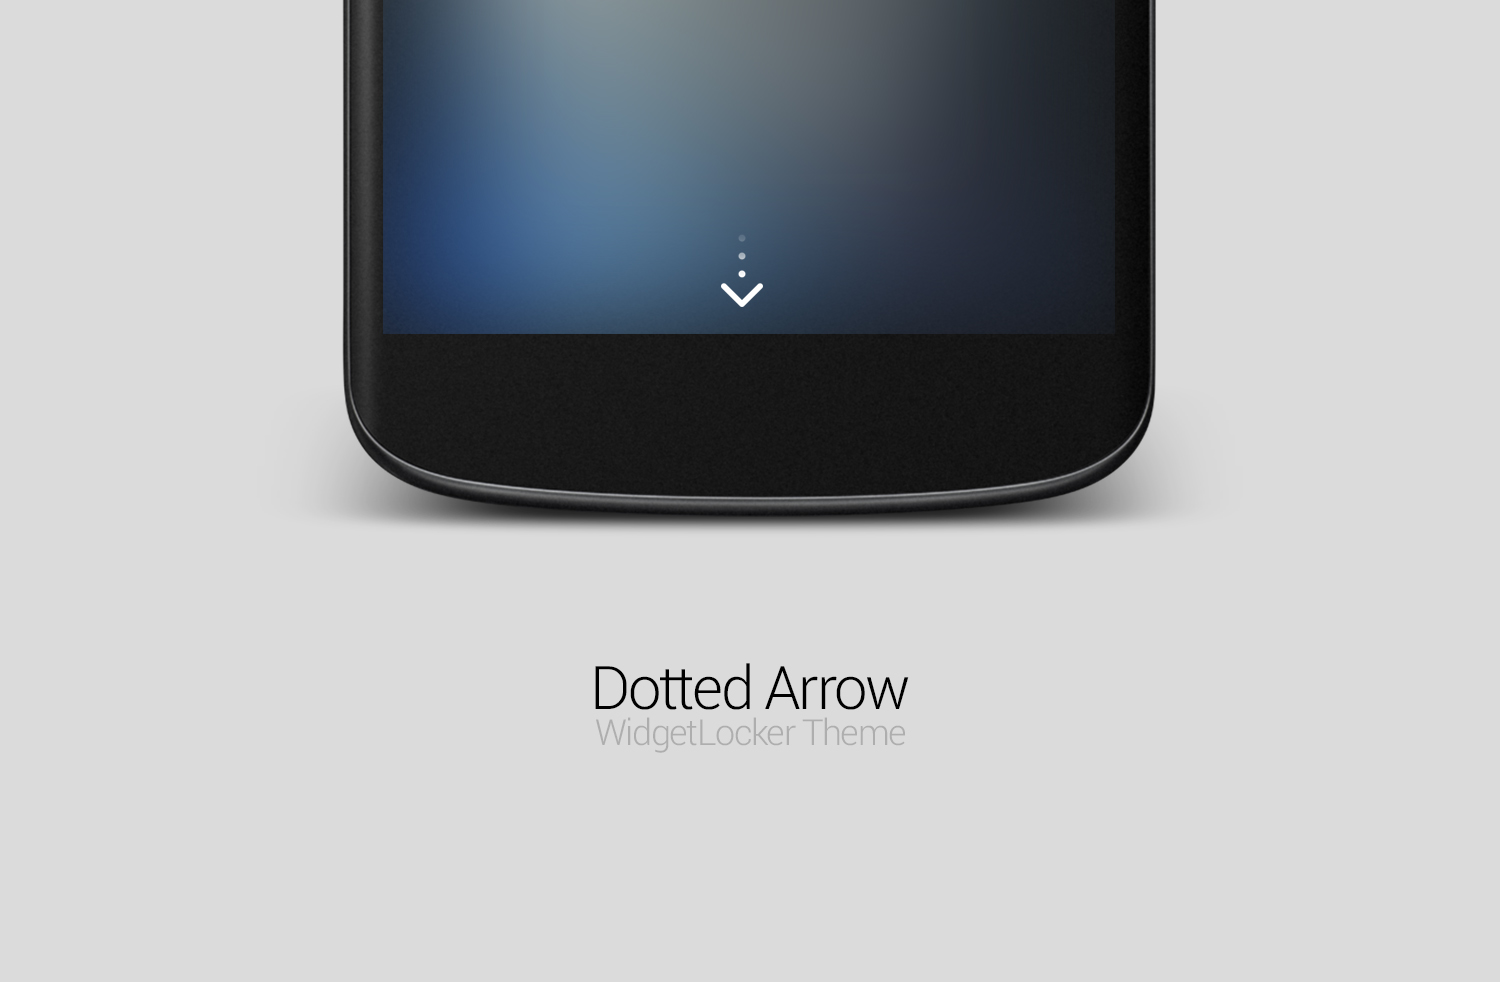 Dotted Arrow WidgetLocker Theme by FFra